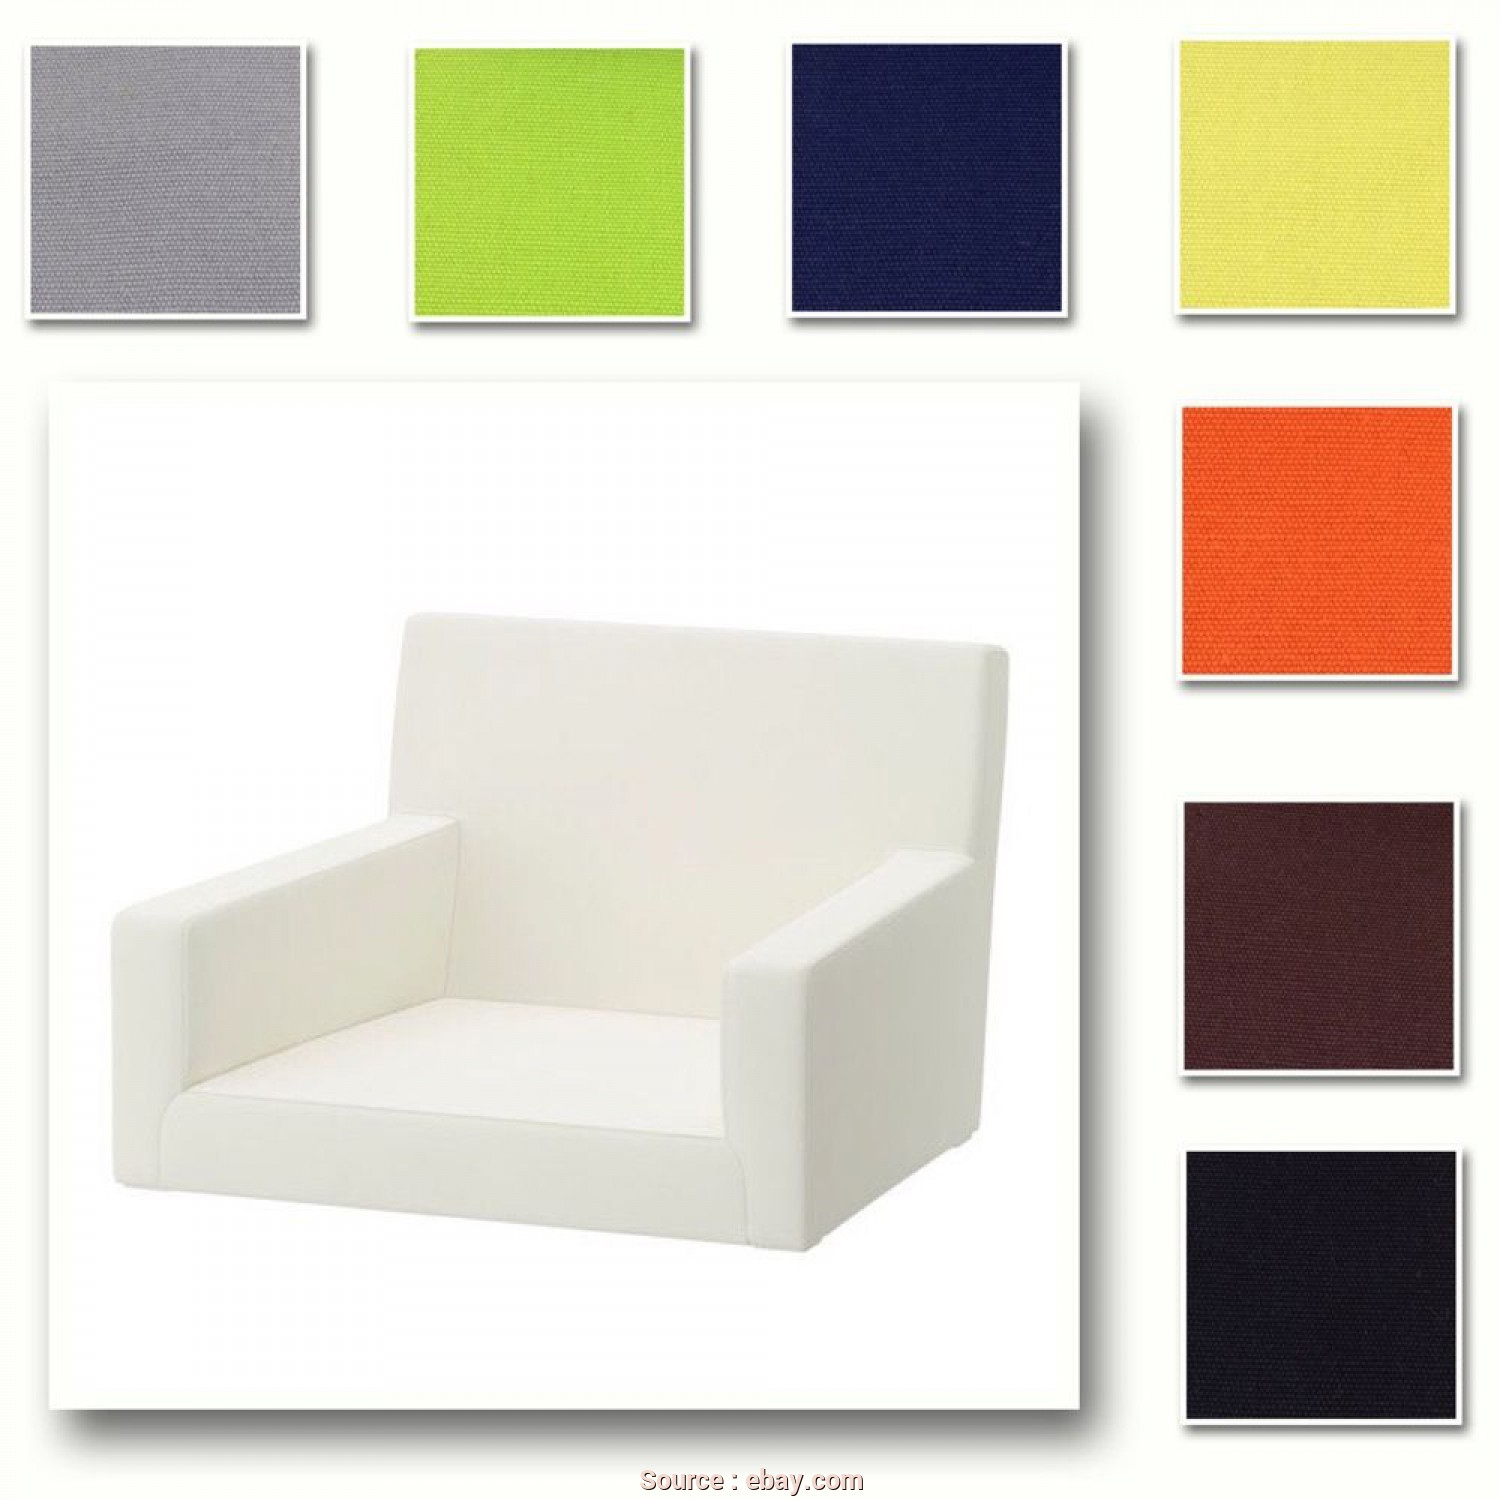 Ikea Beddinge Australia, Buono Details About Customize Sofa Cover, Fits IKEA NILS Chair With Armrests, Dinning Chair Cover